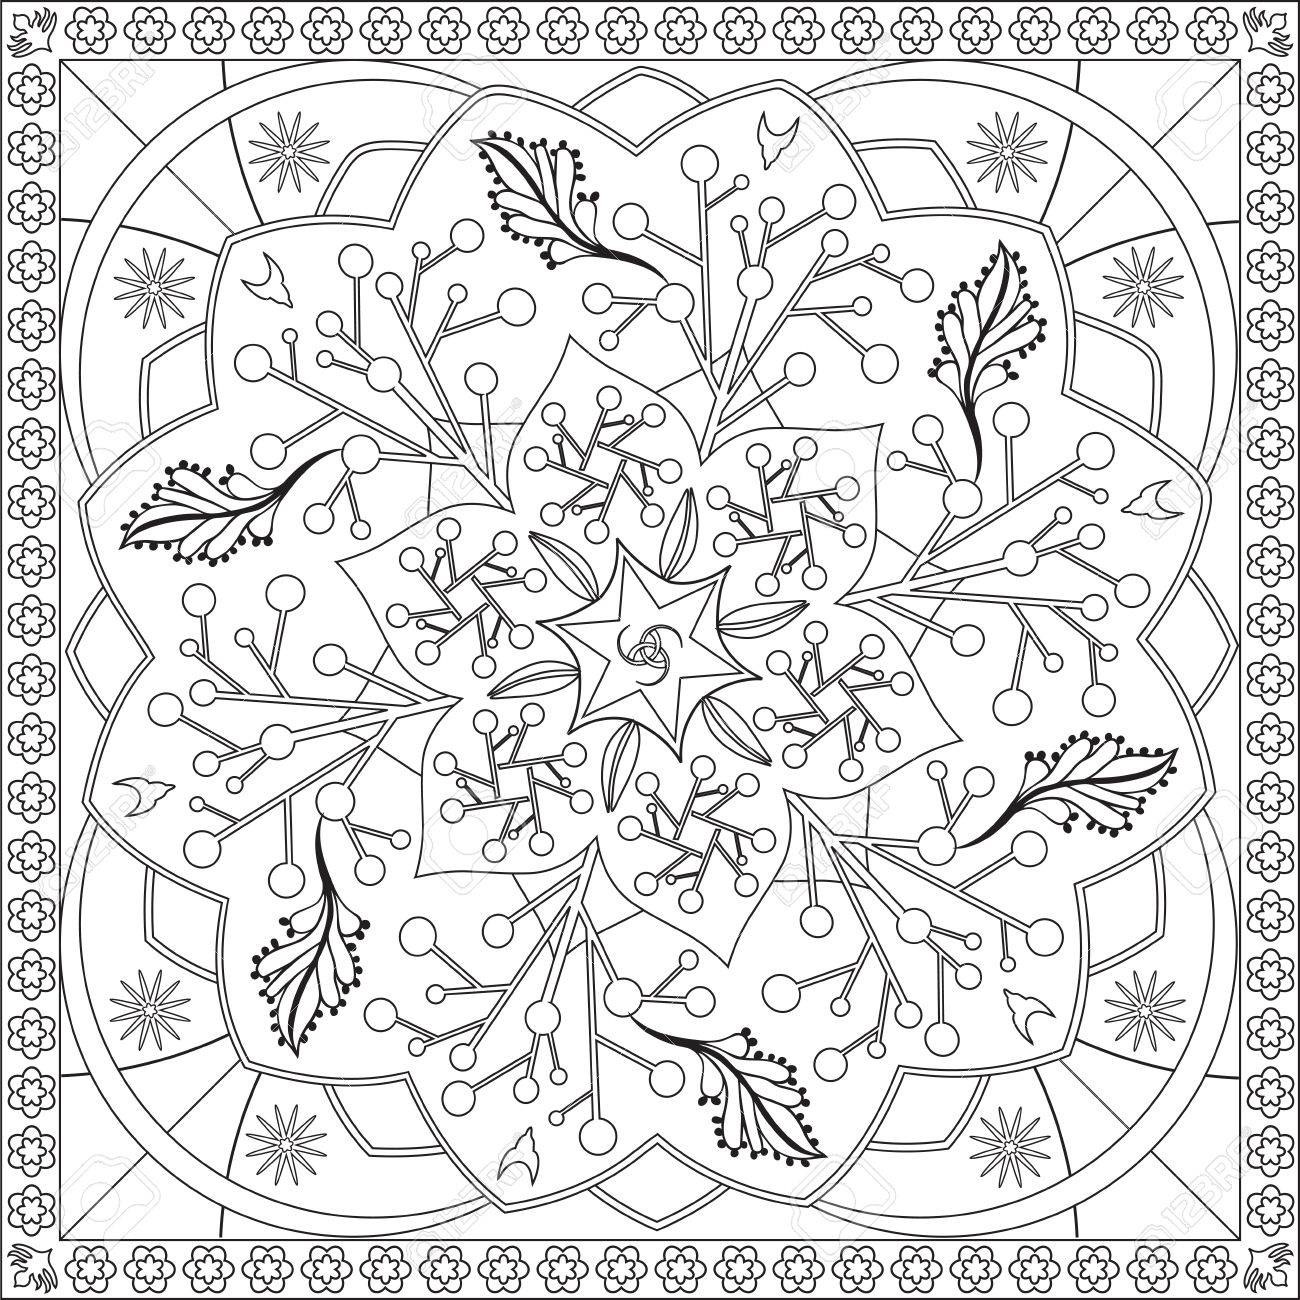 Page Coloring Book For Adults Square Format Foliage Flower Mandala Design Illustration Stock Vector